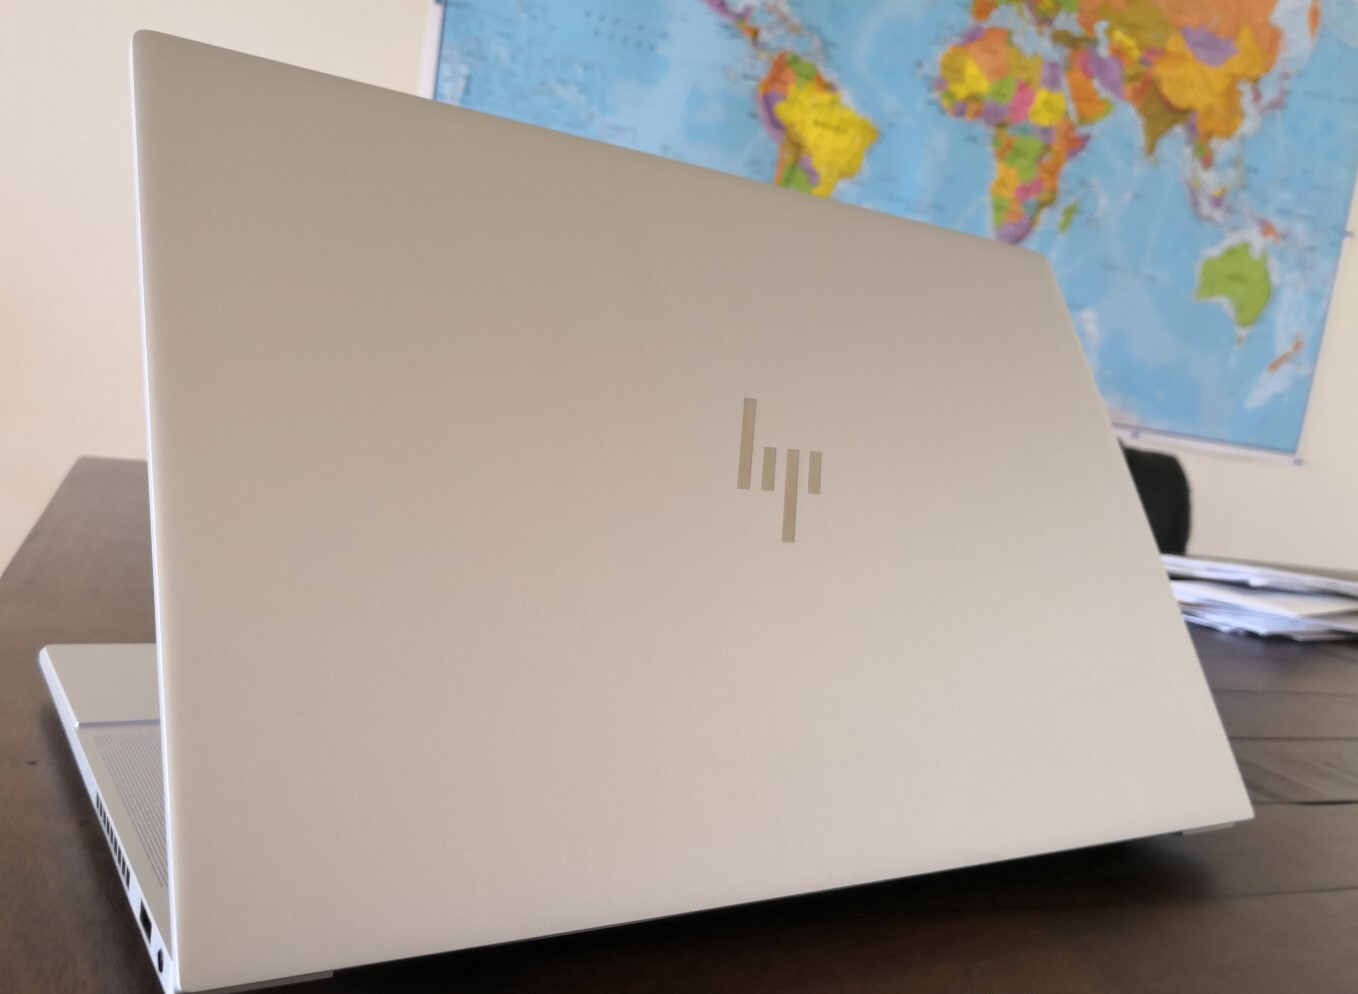 2020 Envy 15 Creator Core i7 Review: This is HP's Answer To The Apple MacBook Pro